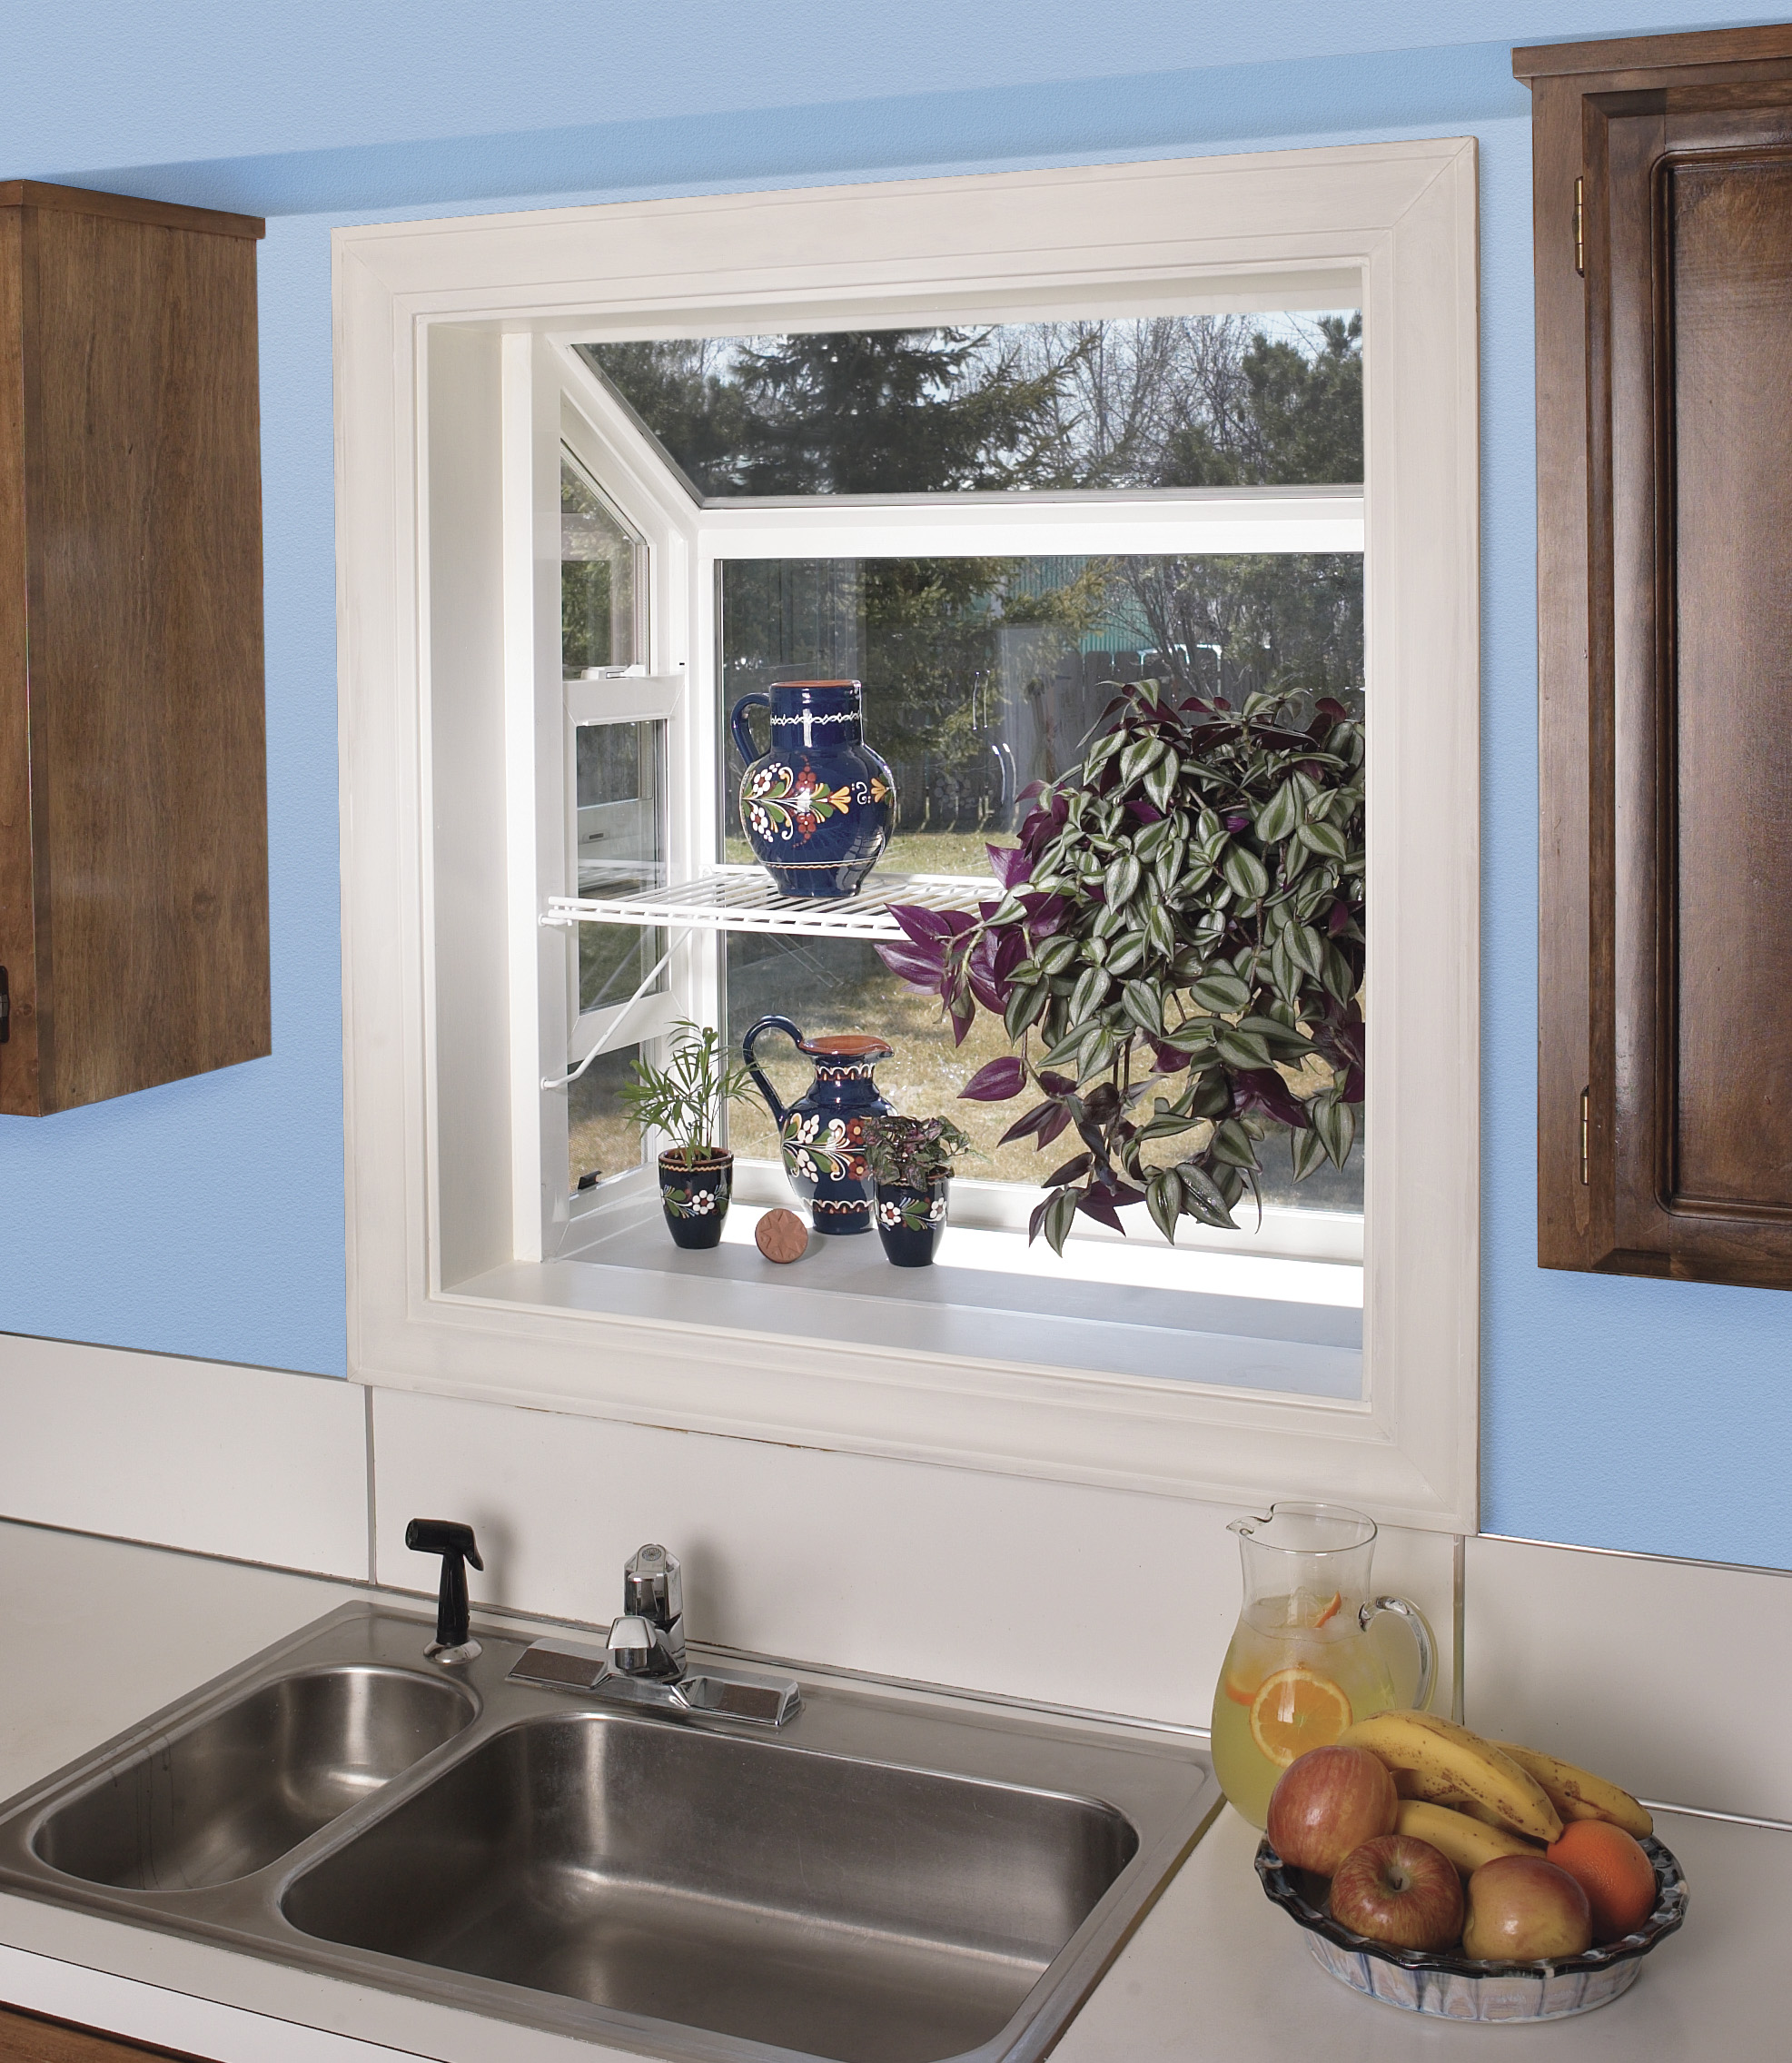 fresh blue kichen ideas with garden bay windows for kitchens above the sink  and fresh fruit